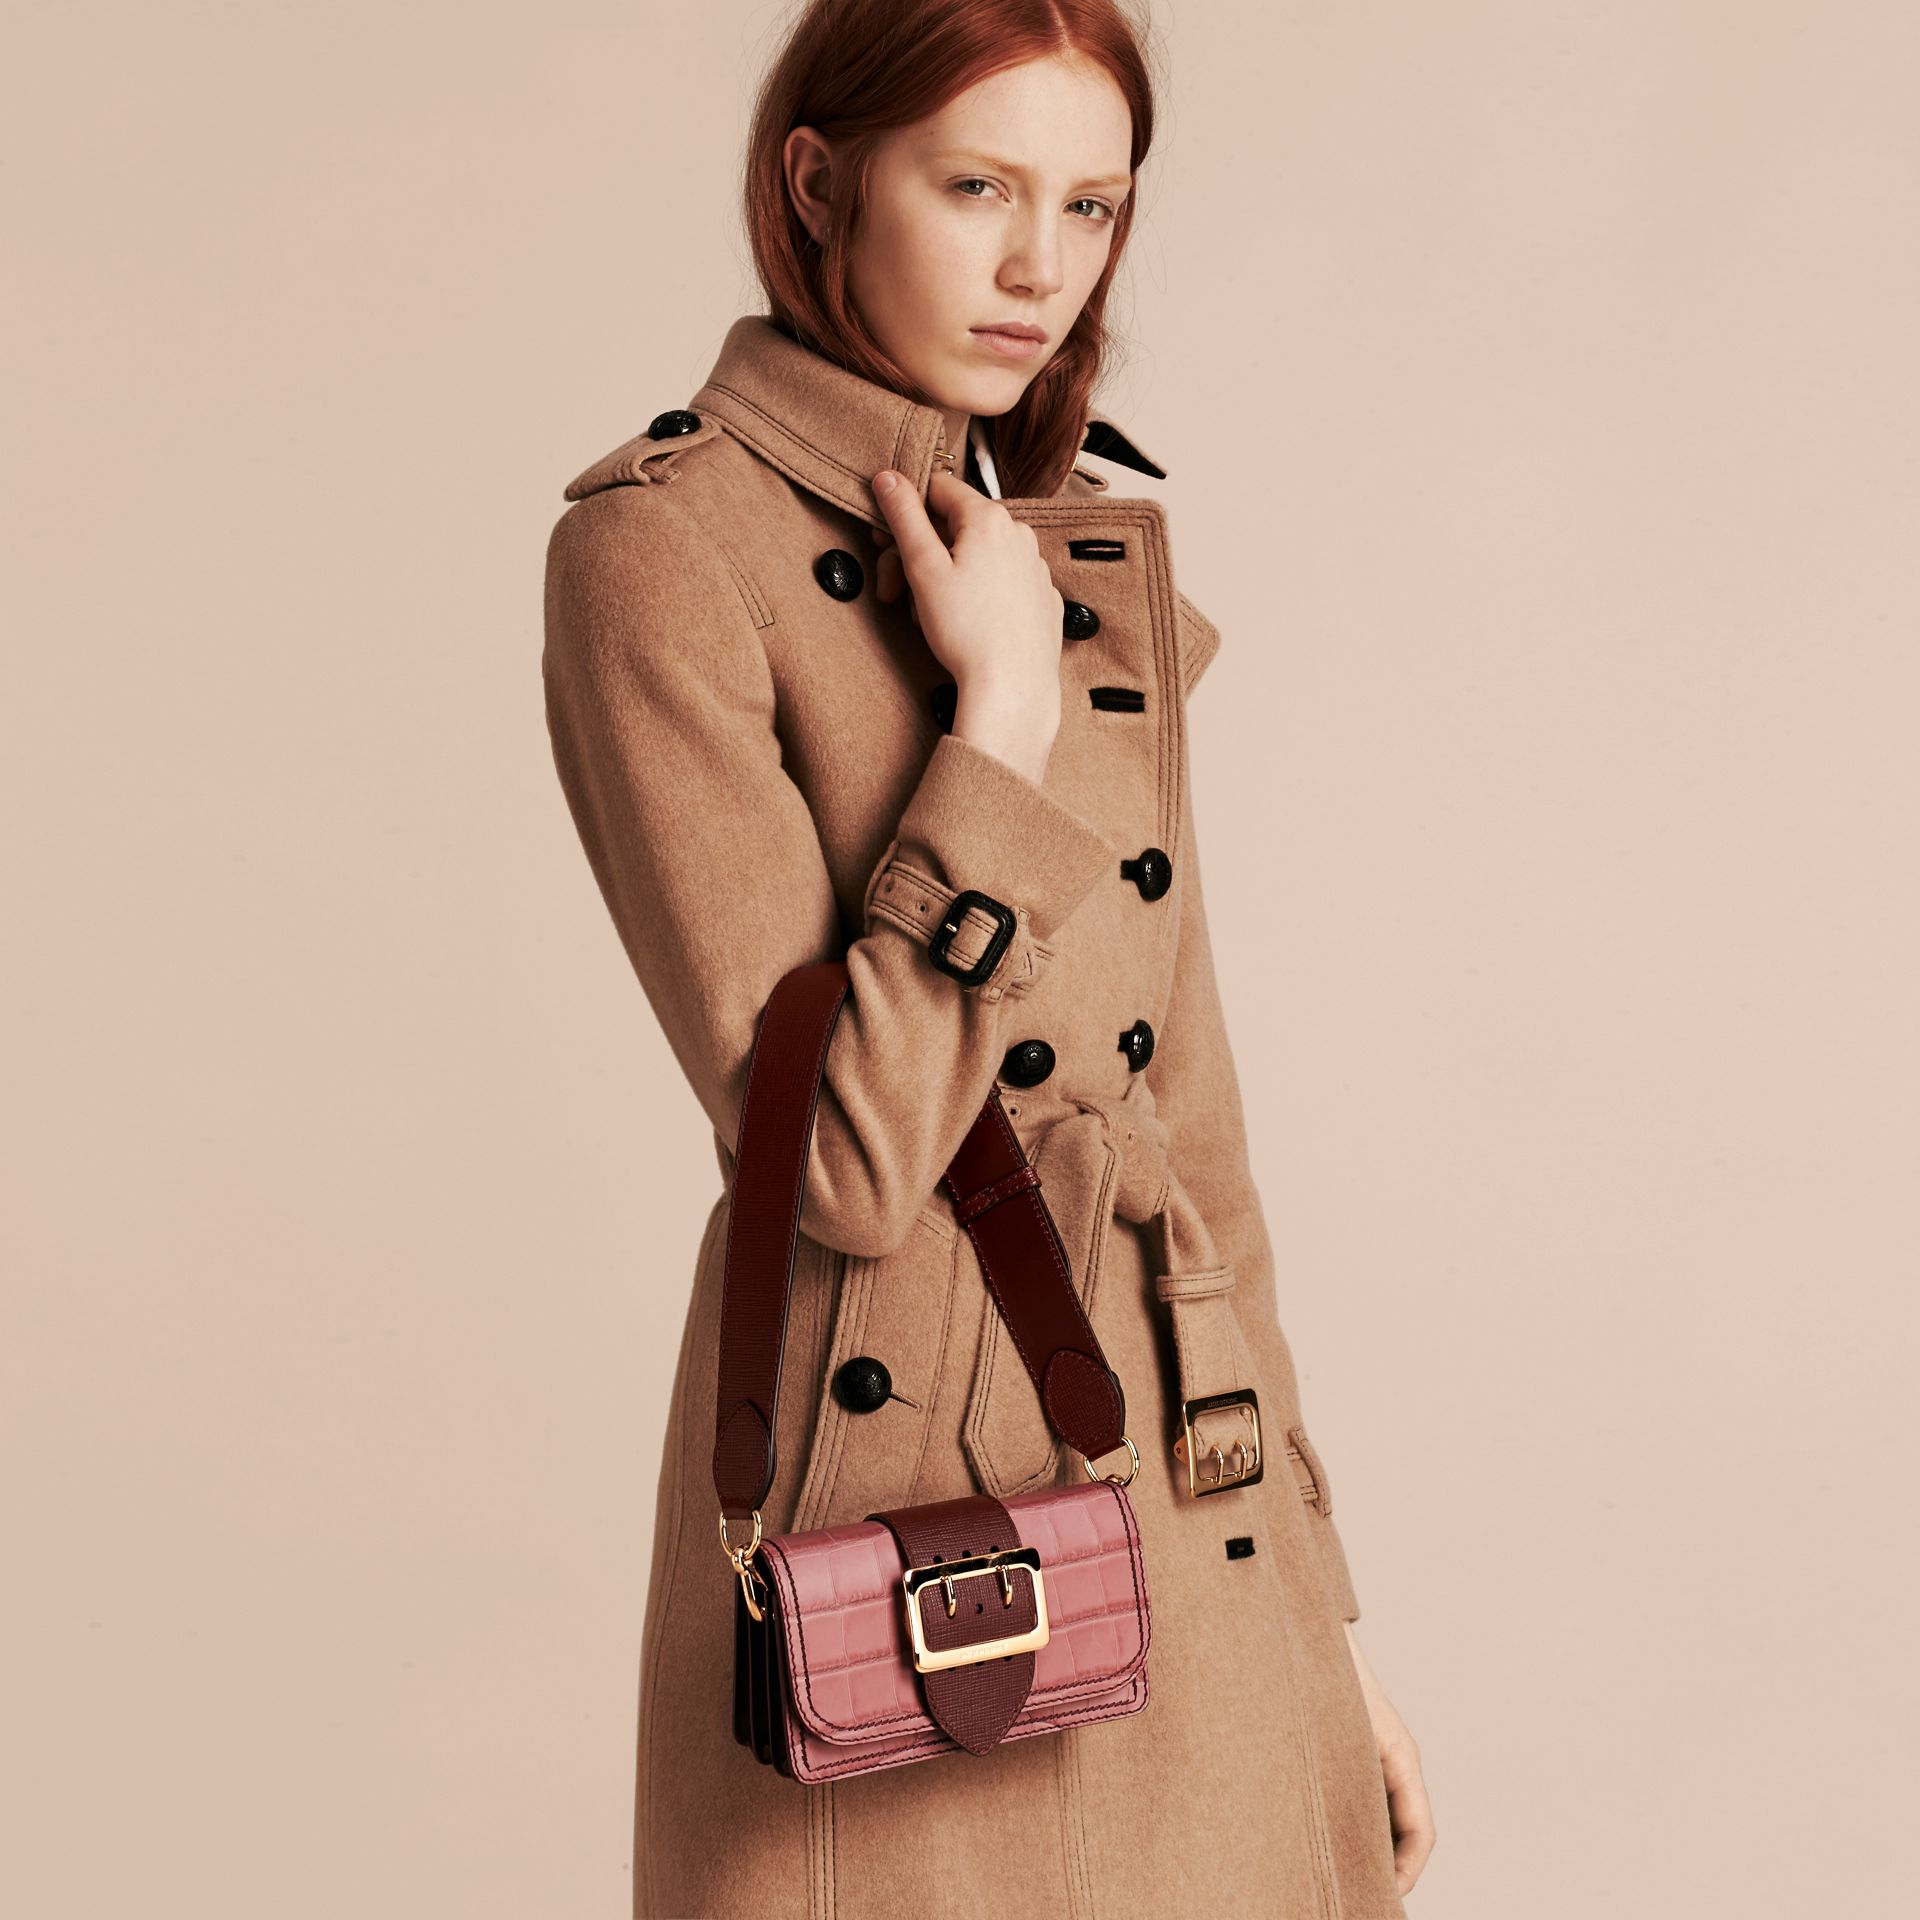 The Small Buckle Bag in Alligator and Leather in Dusky Pink/ Burgundy - Women | Burberry Australia - gallery image 3